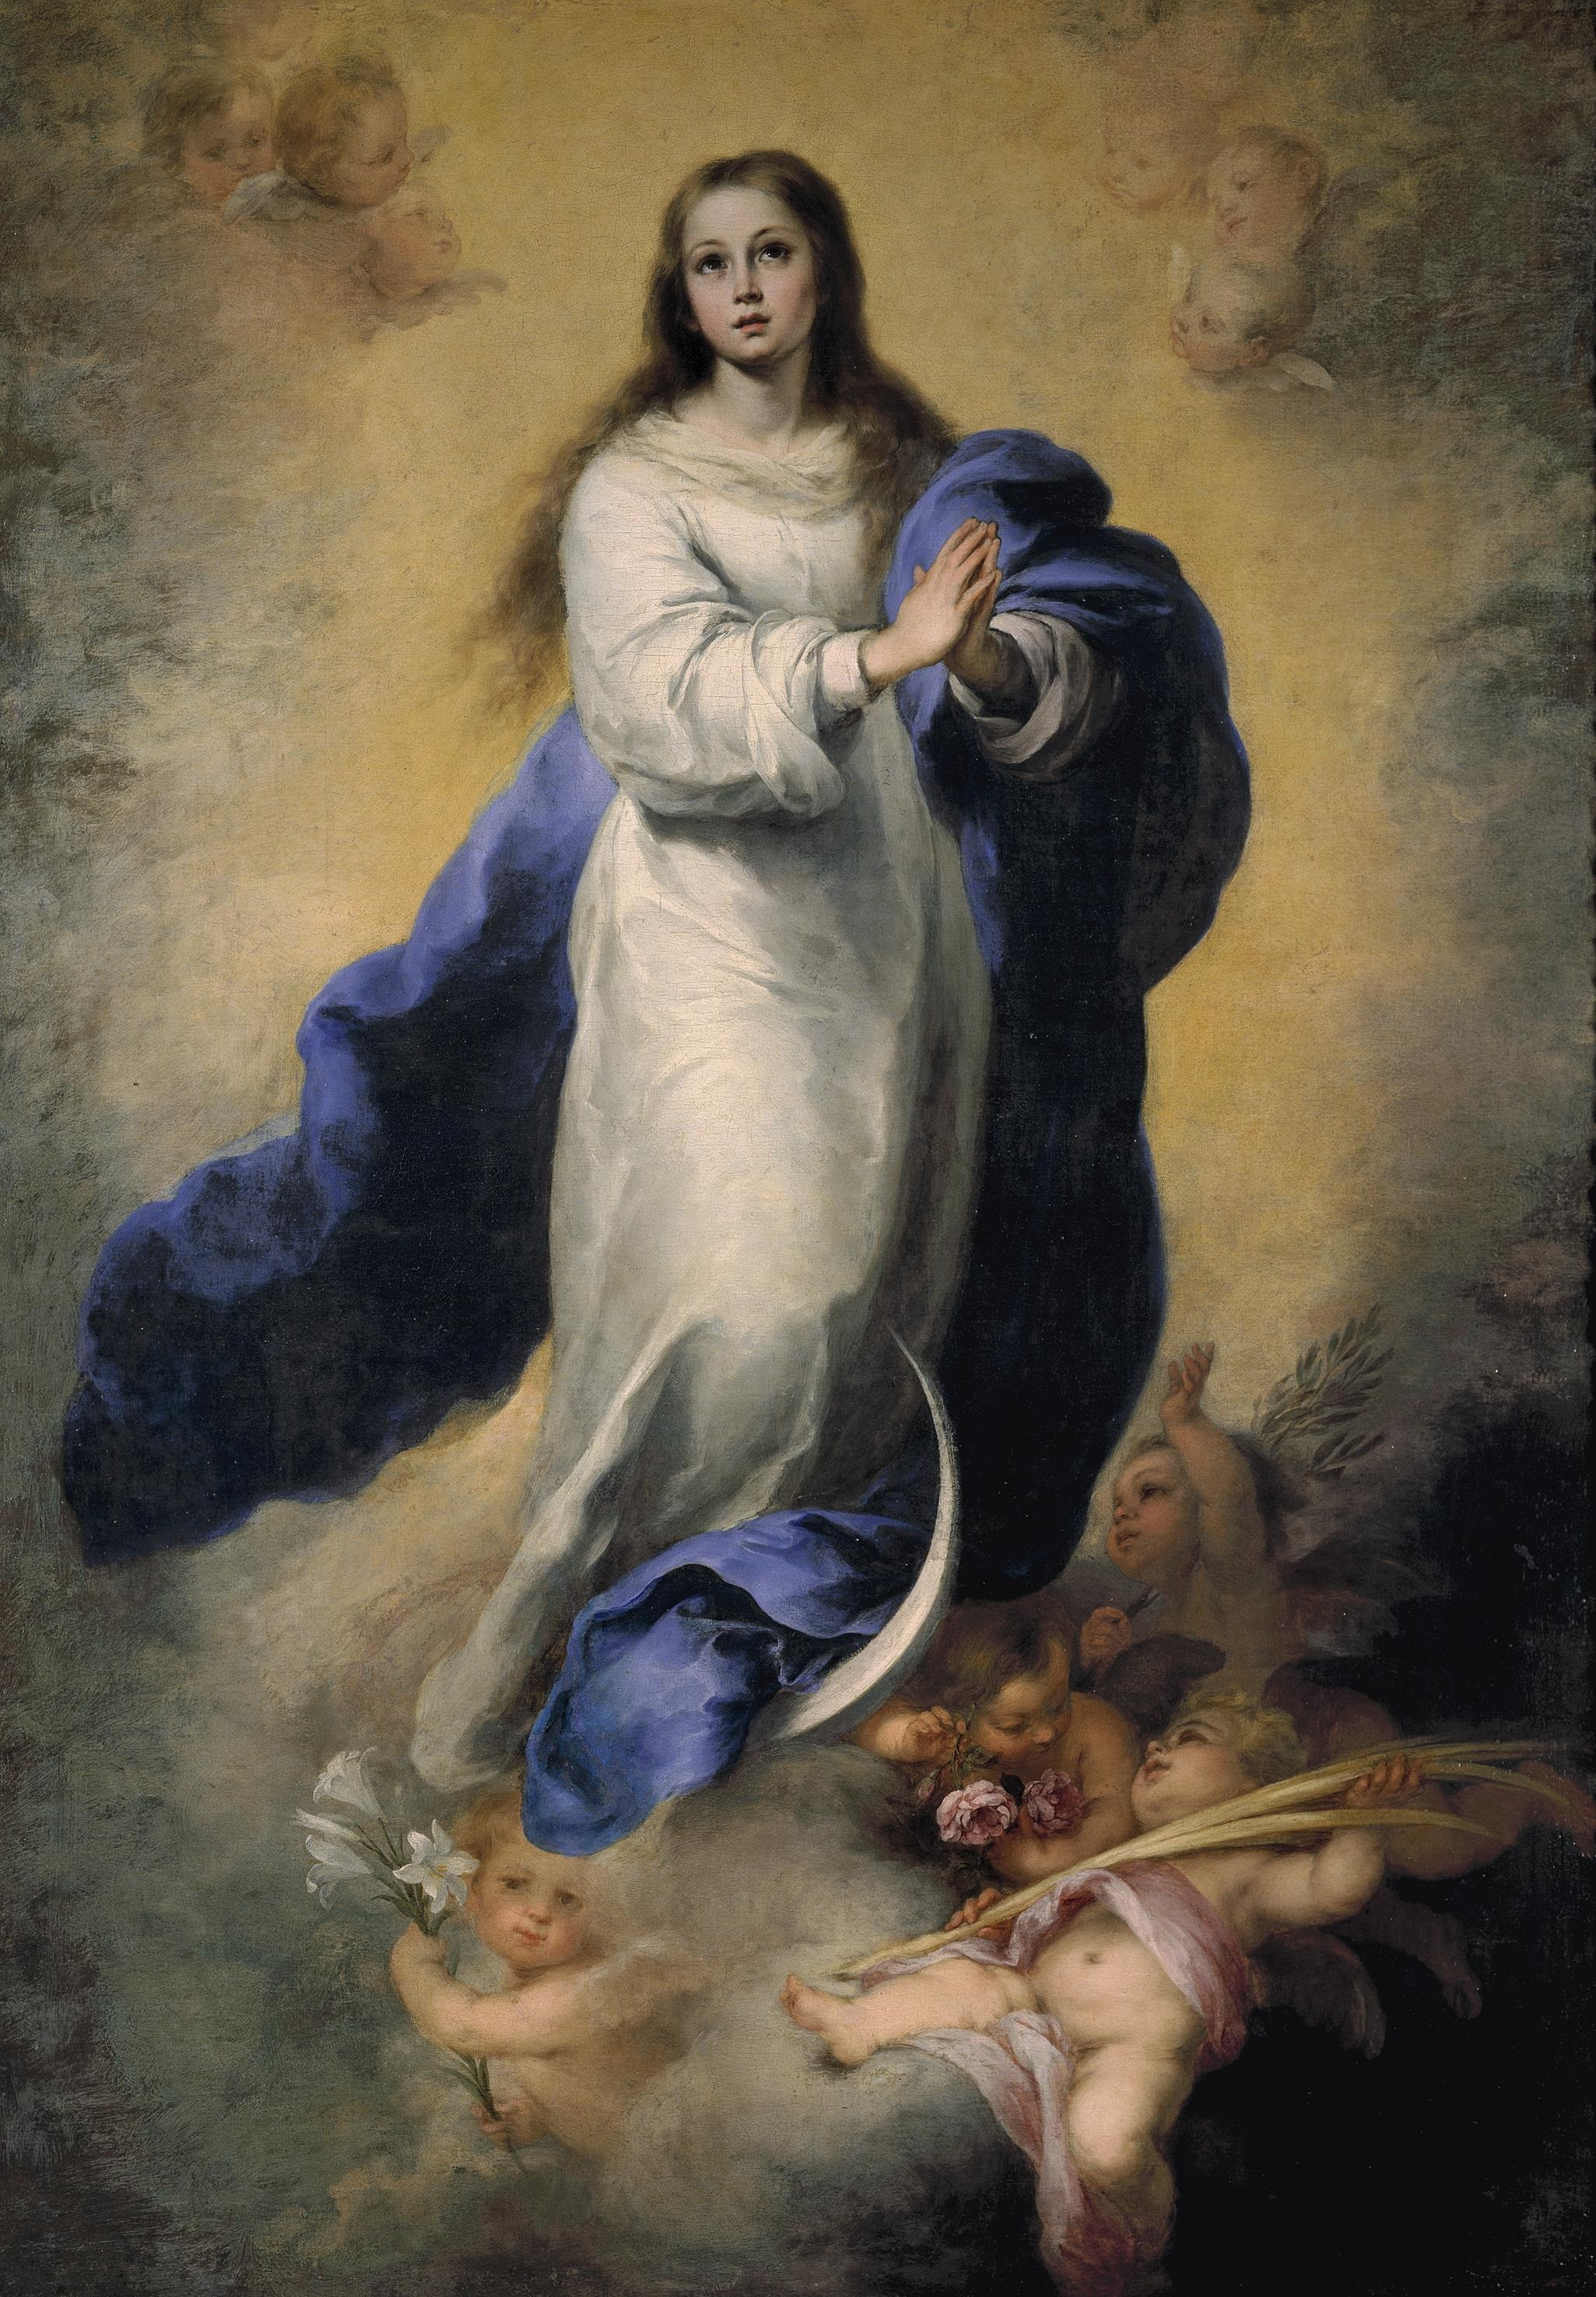 The Immaculate Conception, by Bartolome Murillo; taken from Wikipedia.  Click the image for more about the great Spanish baroque artist.